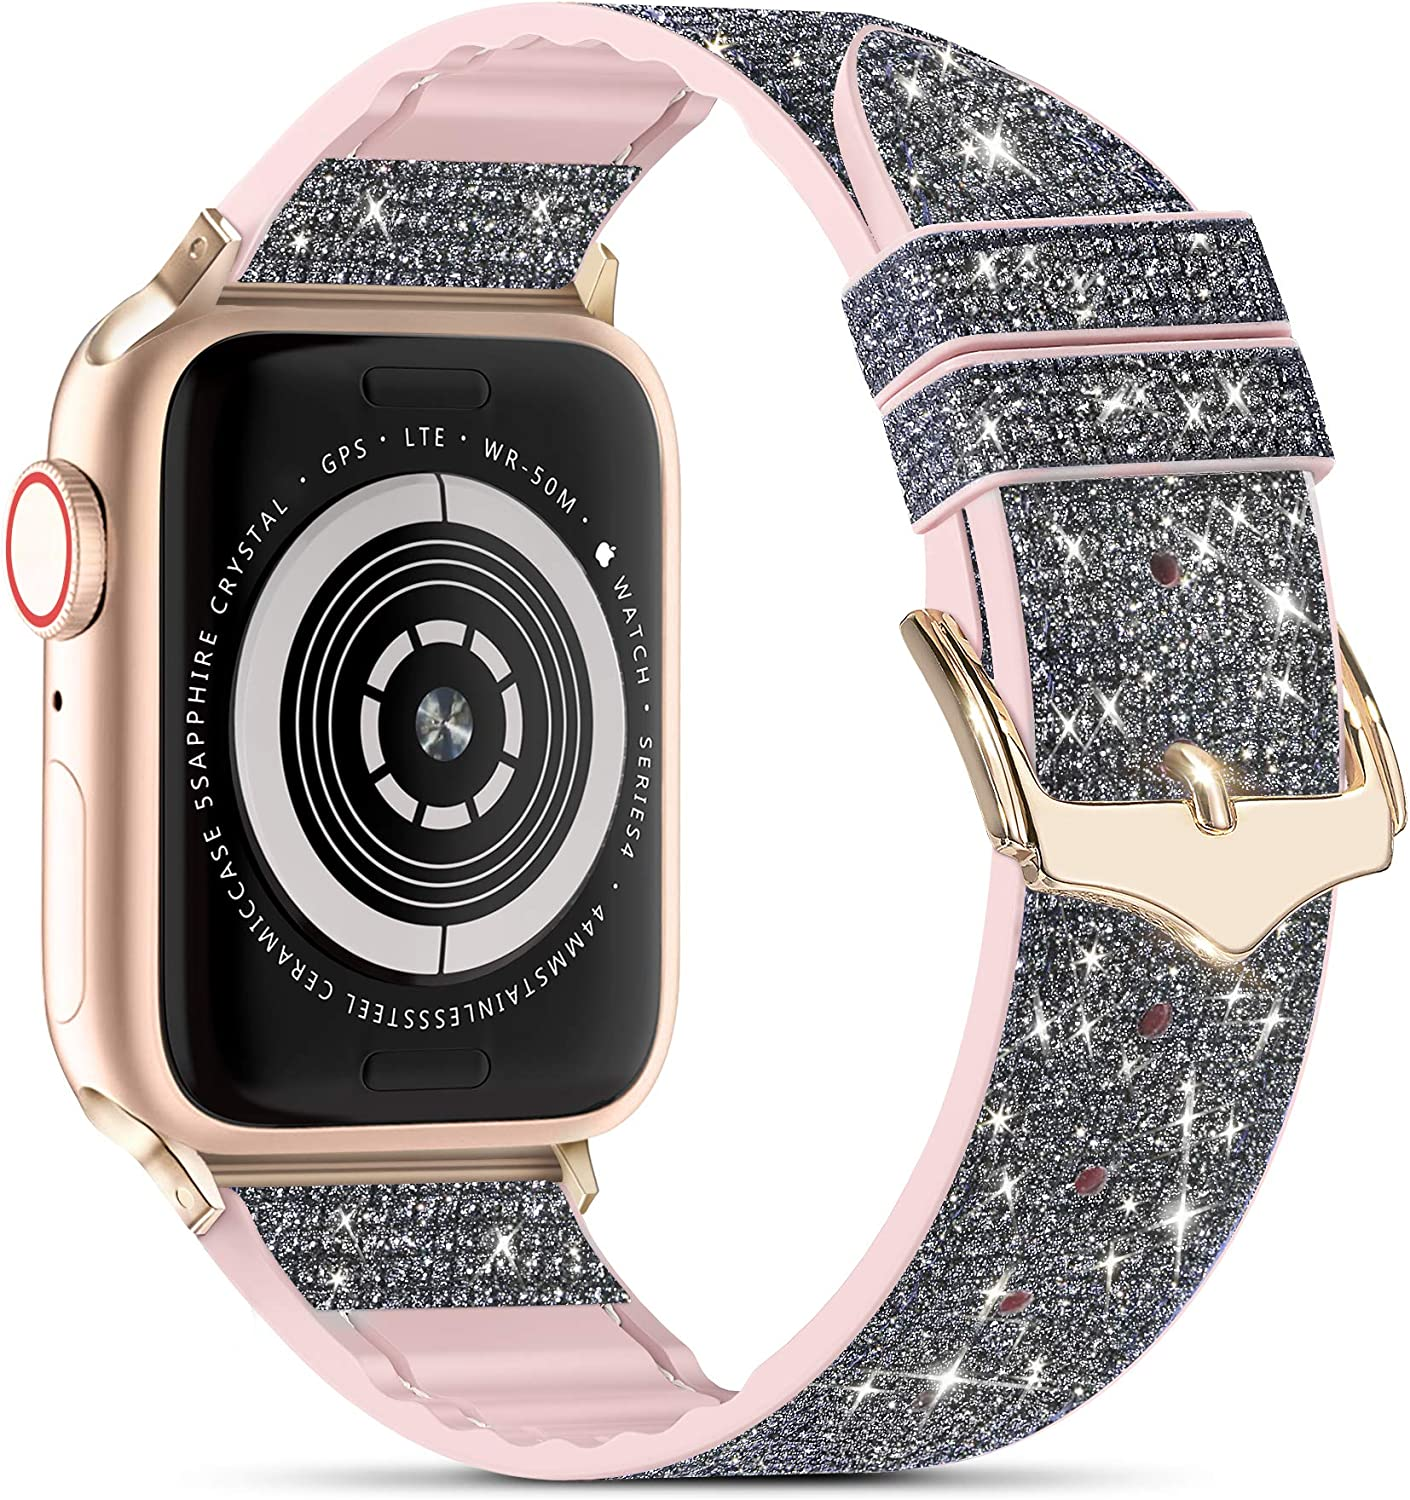 Compatible with Apple Watch Band 38mm 40mm 42mm 44mm, CTYBB Blingbling Sweatproof Genuine Leather and Silicone Band for iWatch SE Series 6 5 4 3 2 1